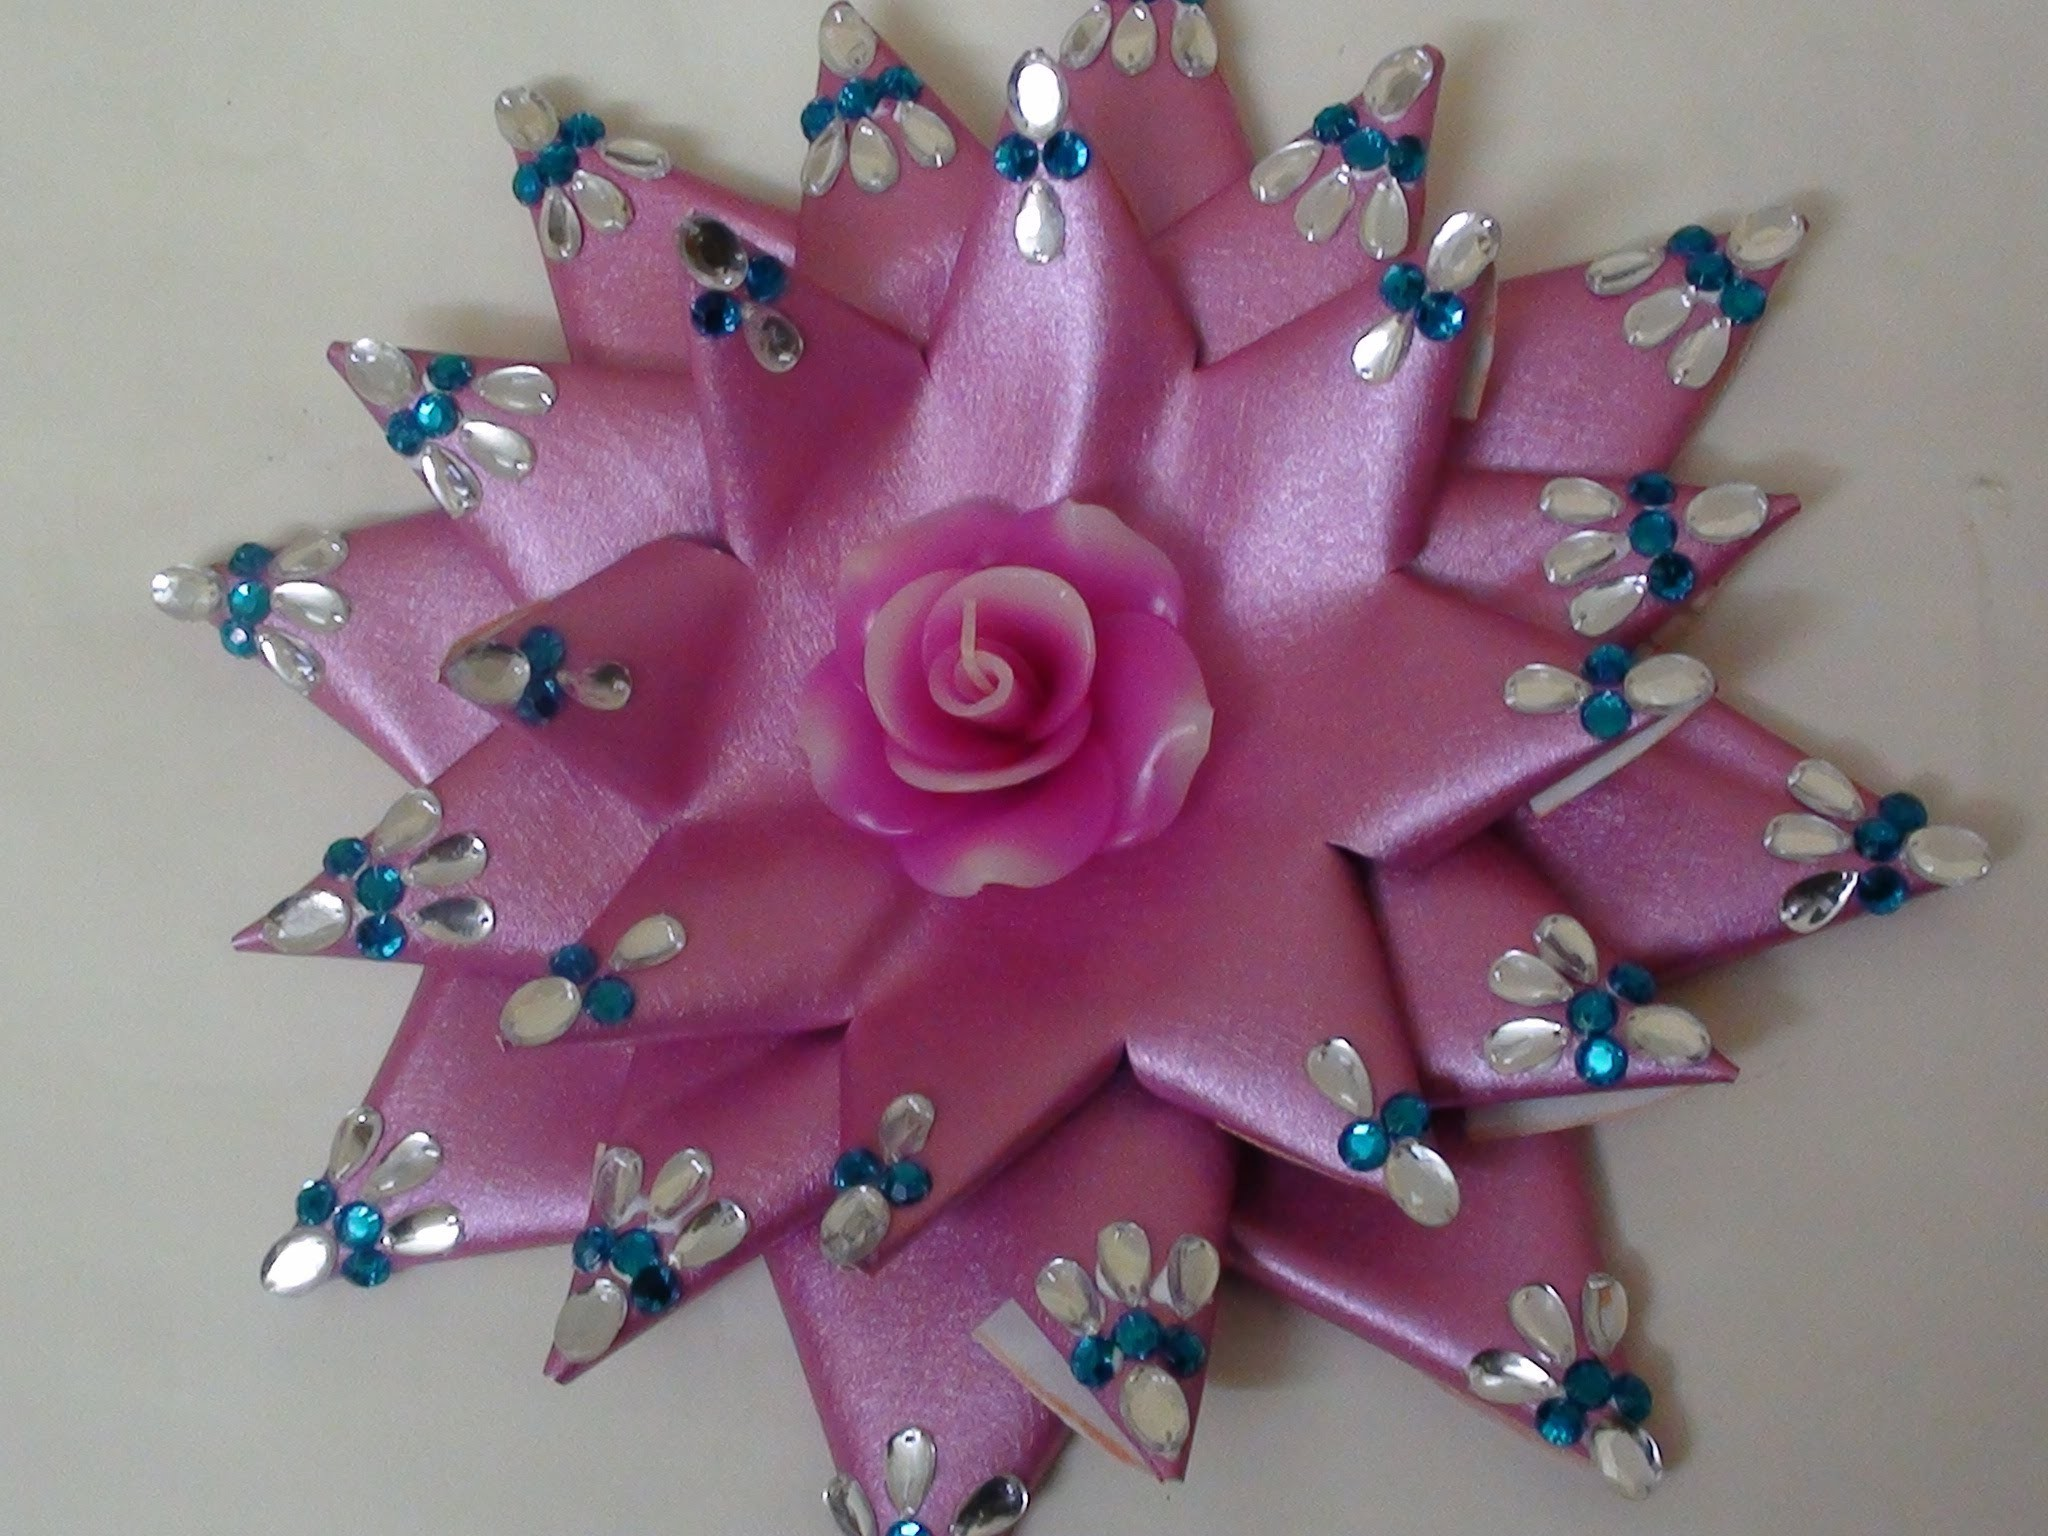 Lotus making with candle decoration